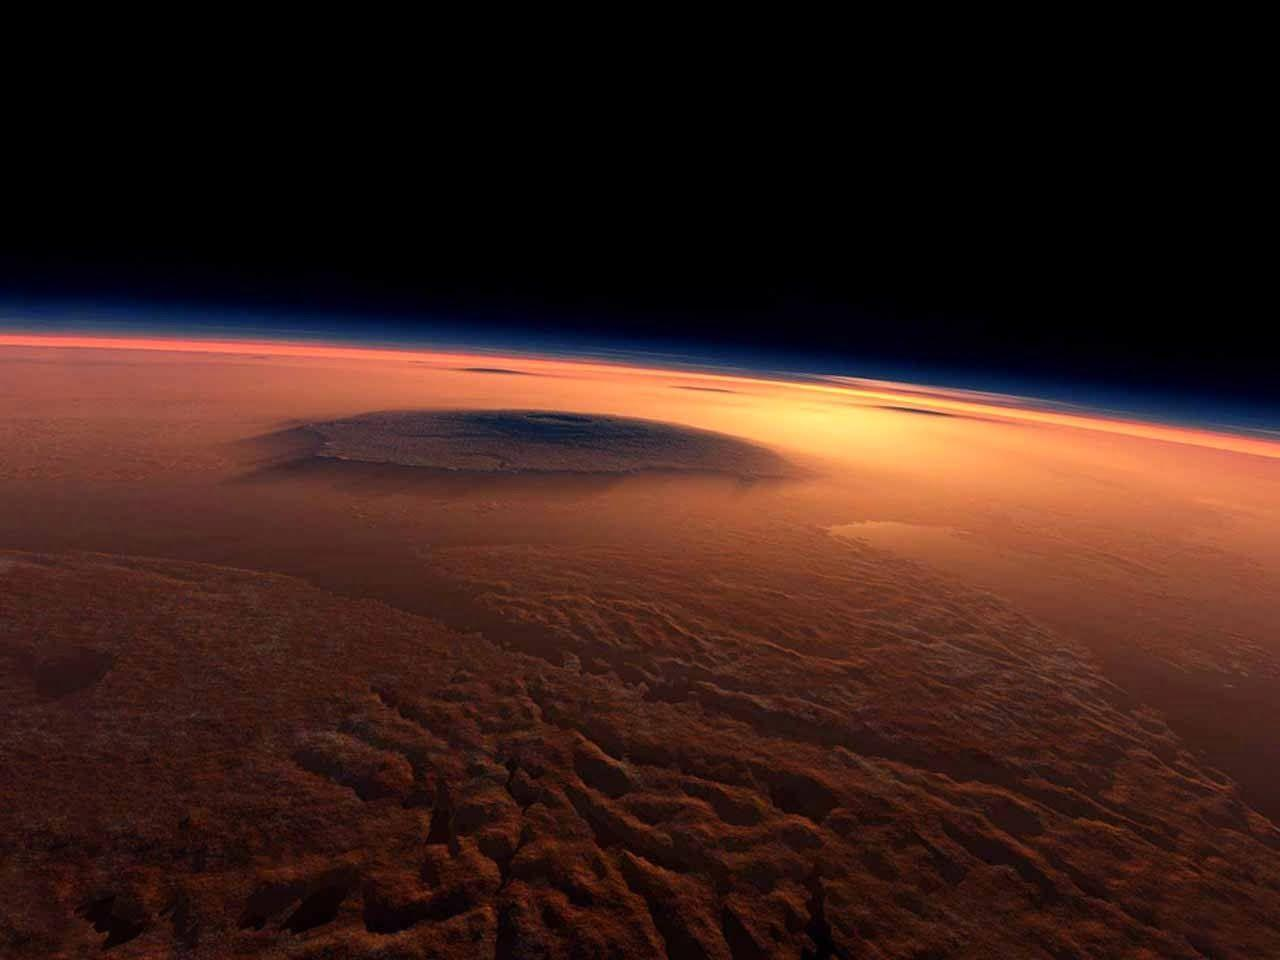 Download Mars HD Wallpapers Mars high quality and definition